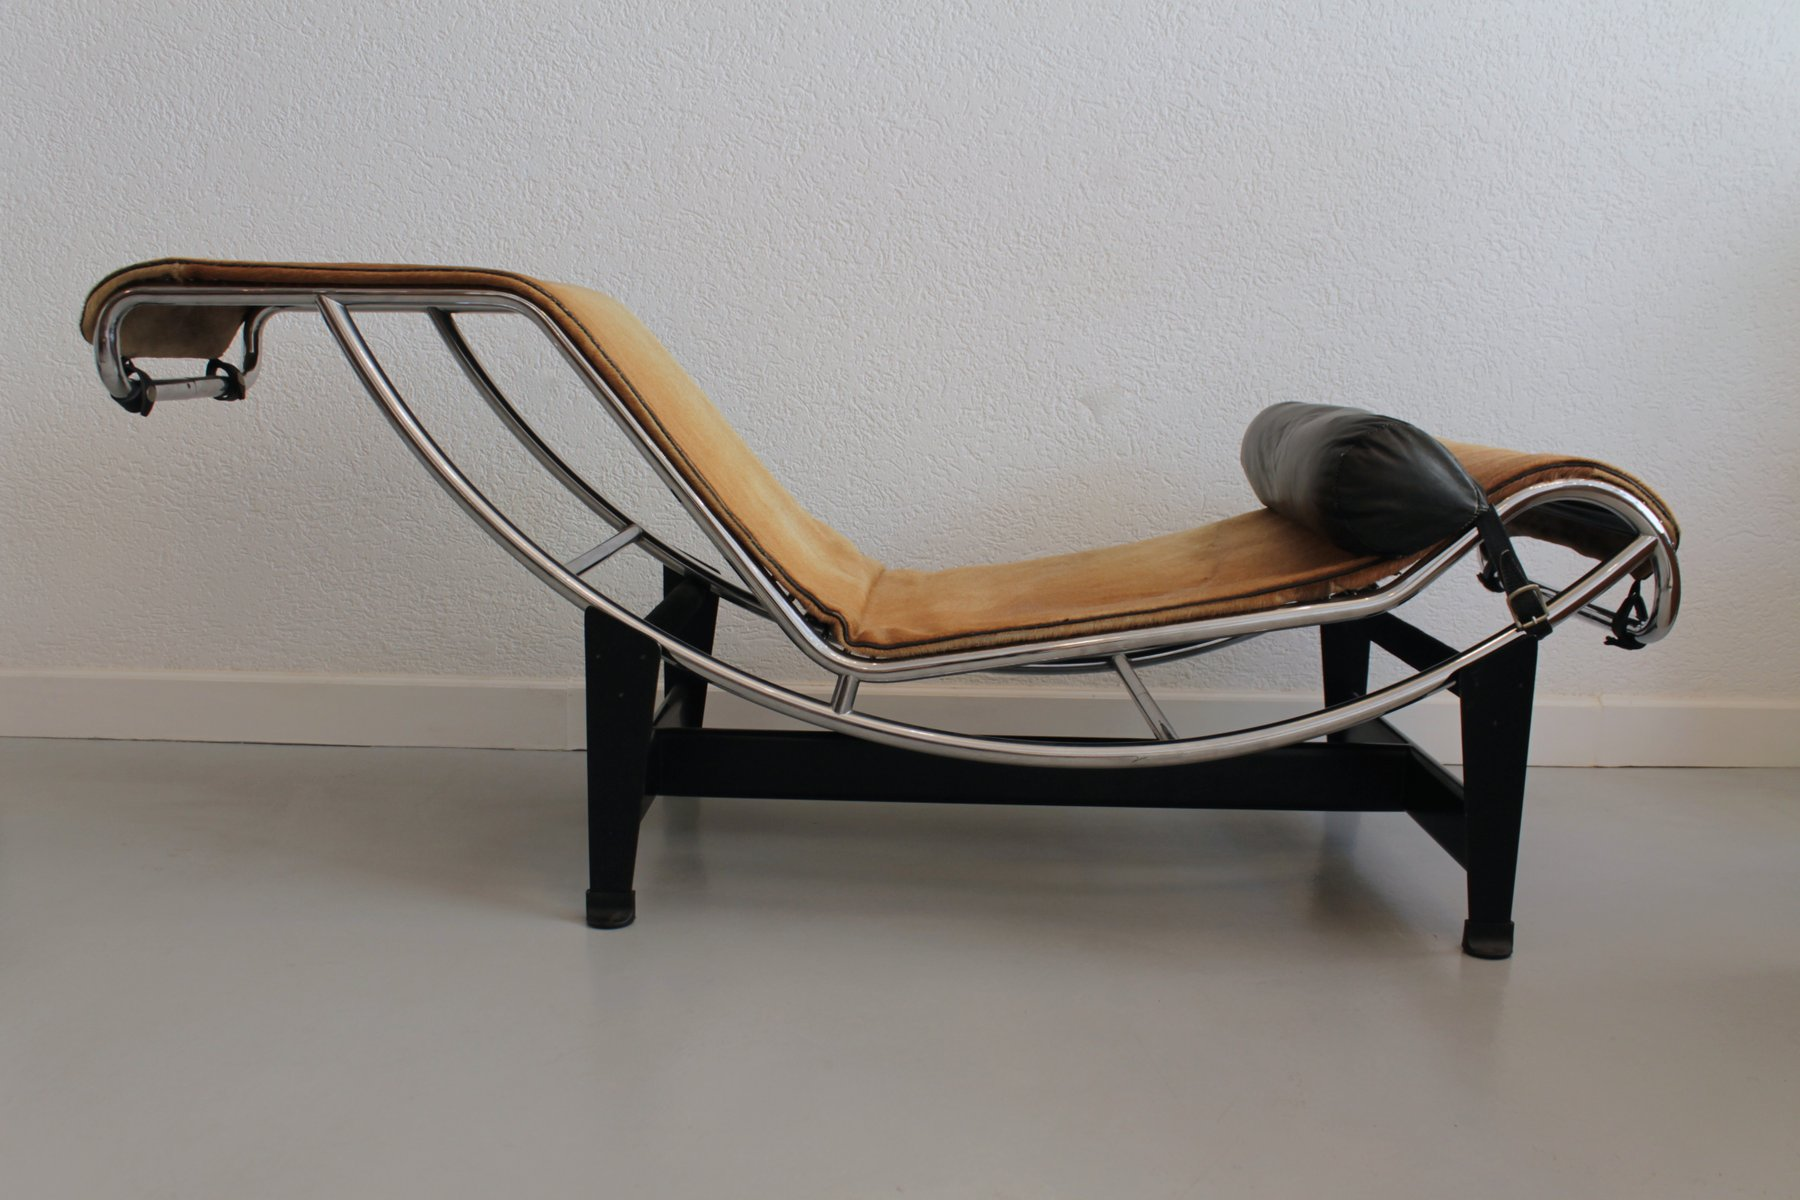 Le corbusier lounge chair - Lc4 Lounge Chair In Pony Skin By Le Corbusier Jeanneret Perriand 1965